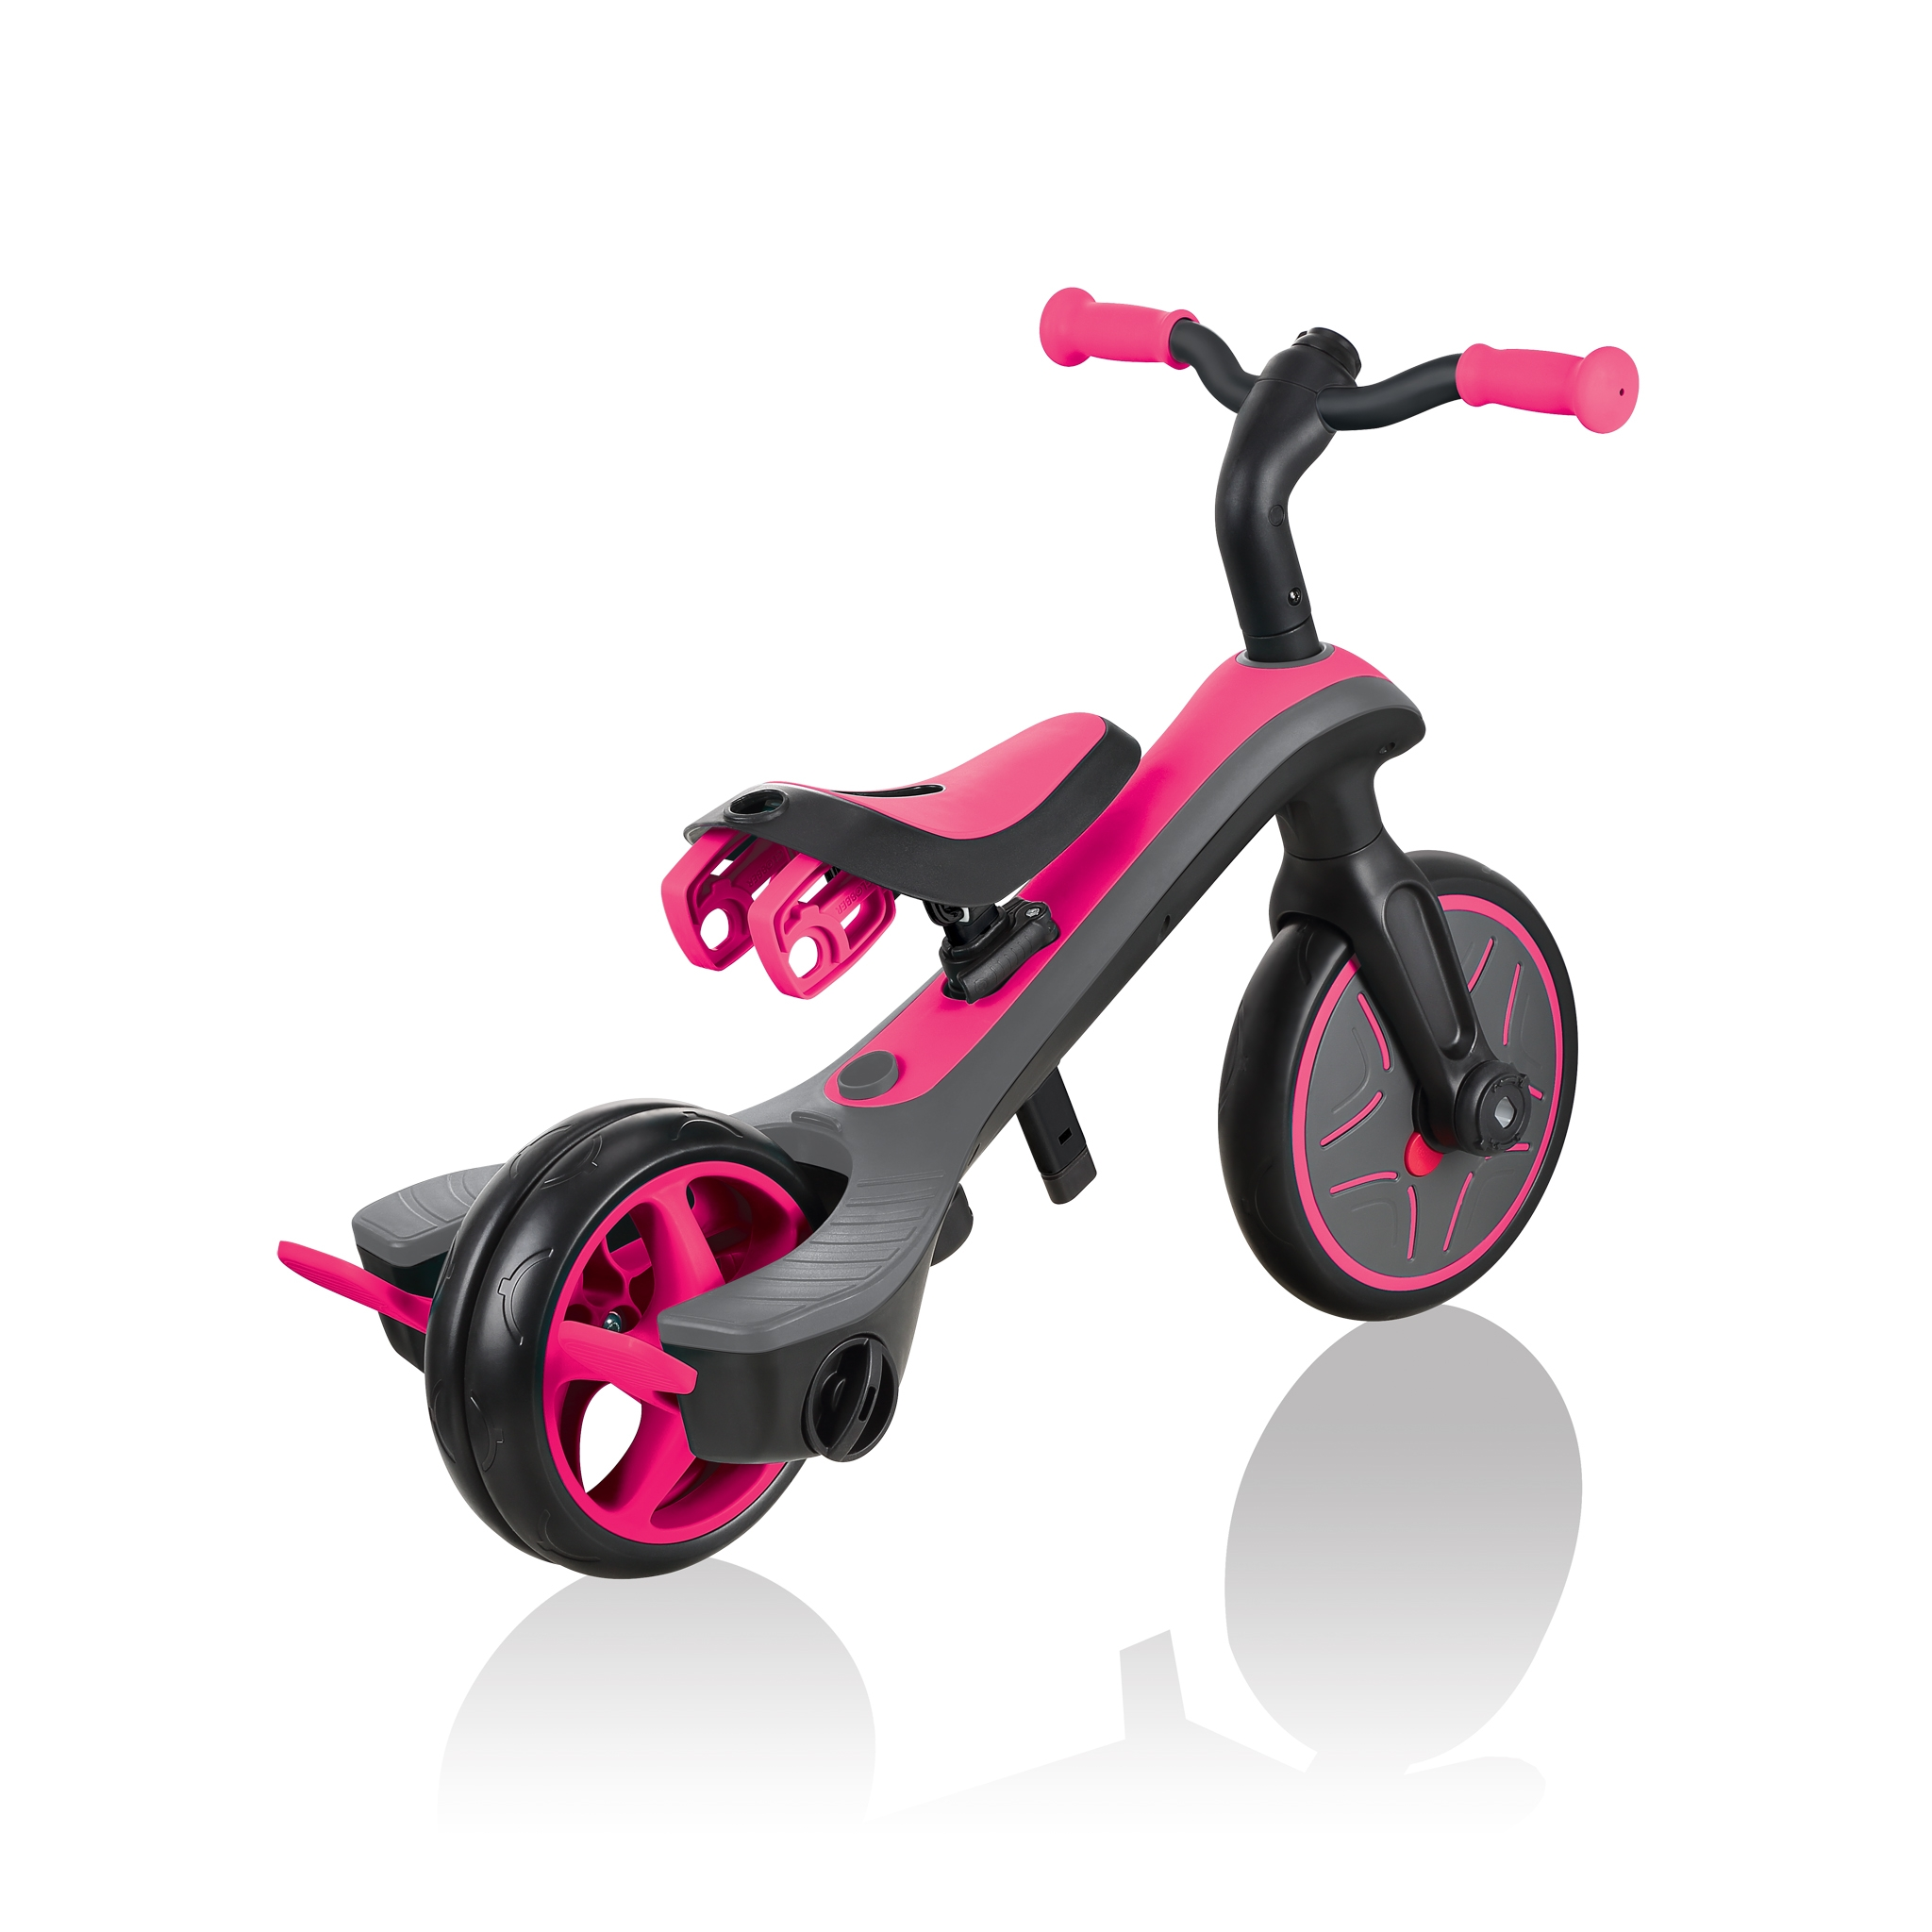 Globber-EXPLORER-TRIKE-4in1-all-in-one-baby-tricycle-and-kids-balance-bike-with-smart-pedal-storage 8